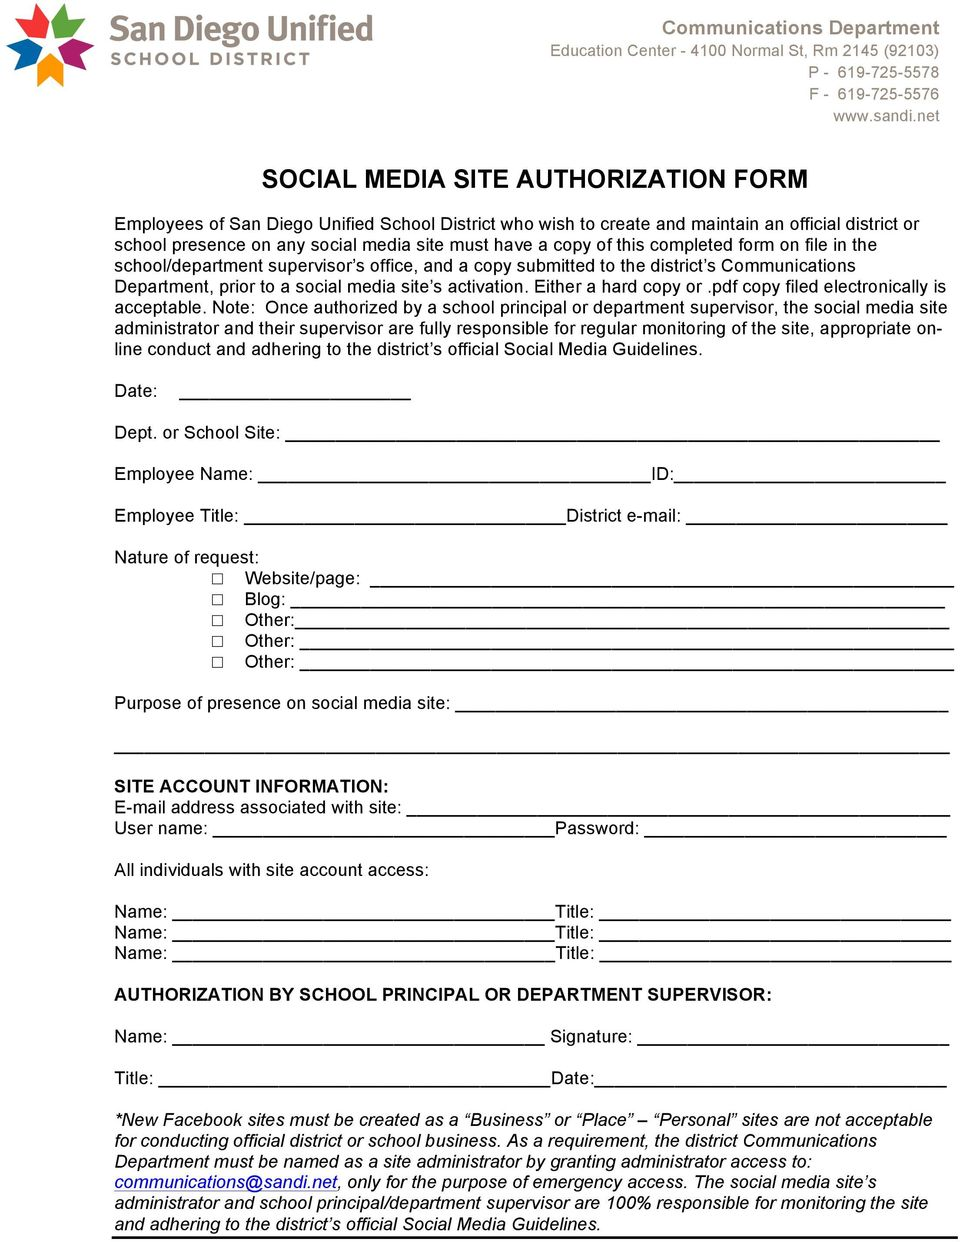 copy of this completed form on file in the school/department supervisor s office, and a copy submitted to the district s Communications Department, prior to a social media site s activation.